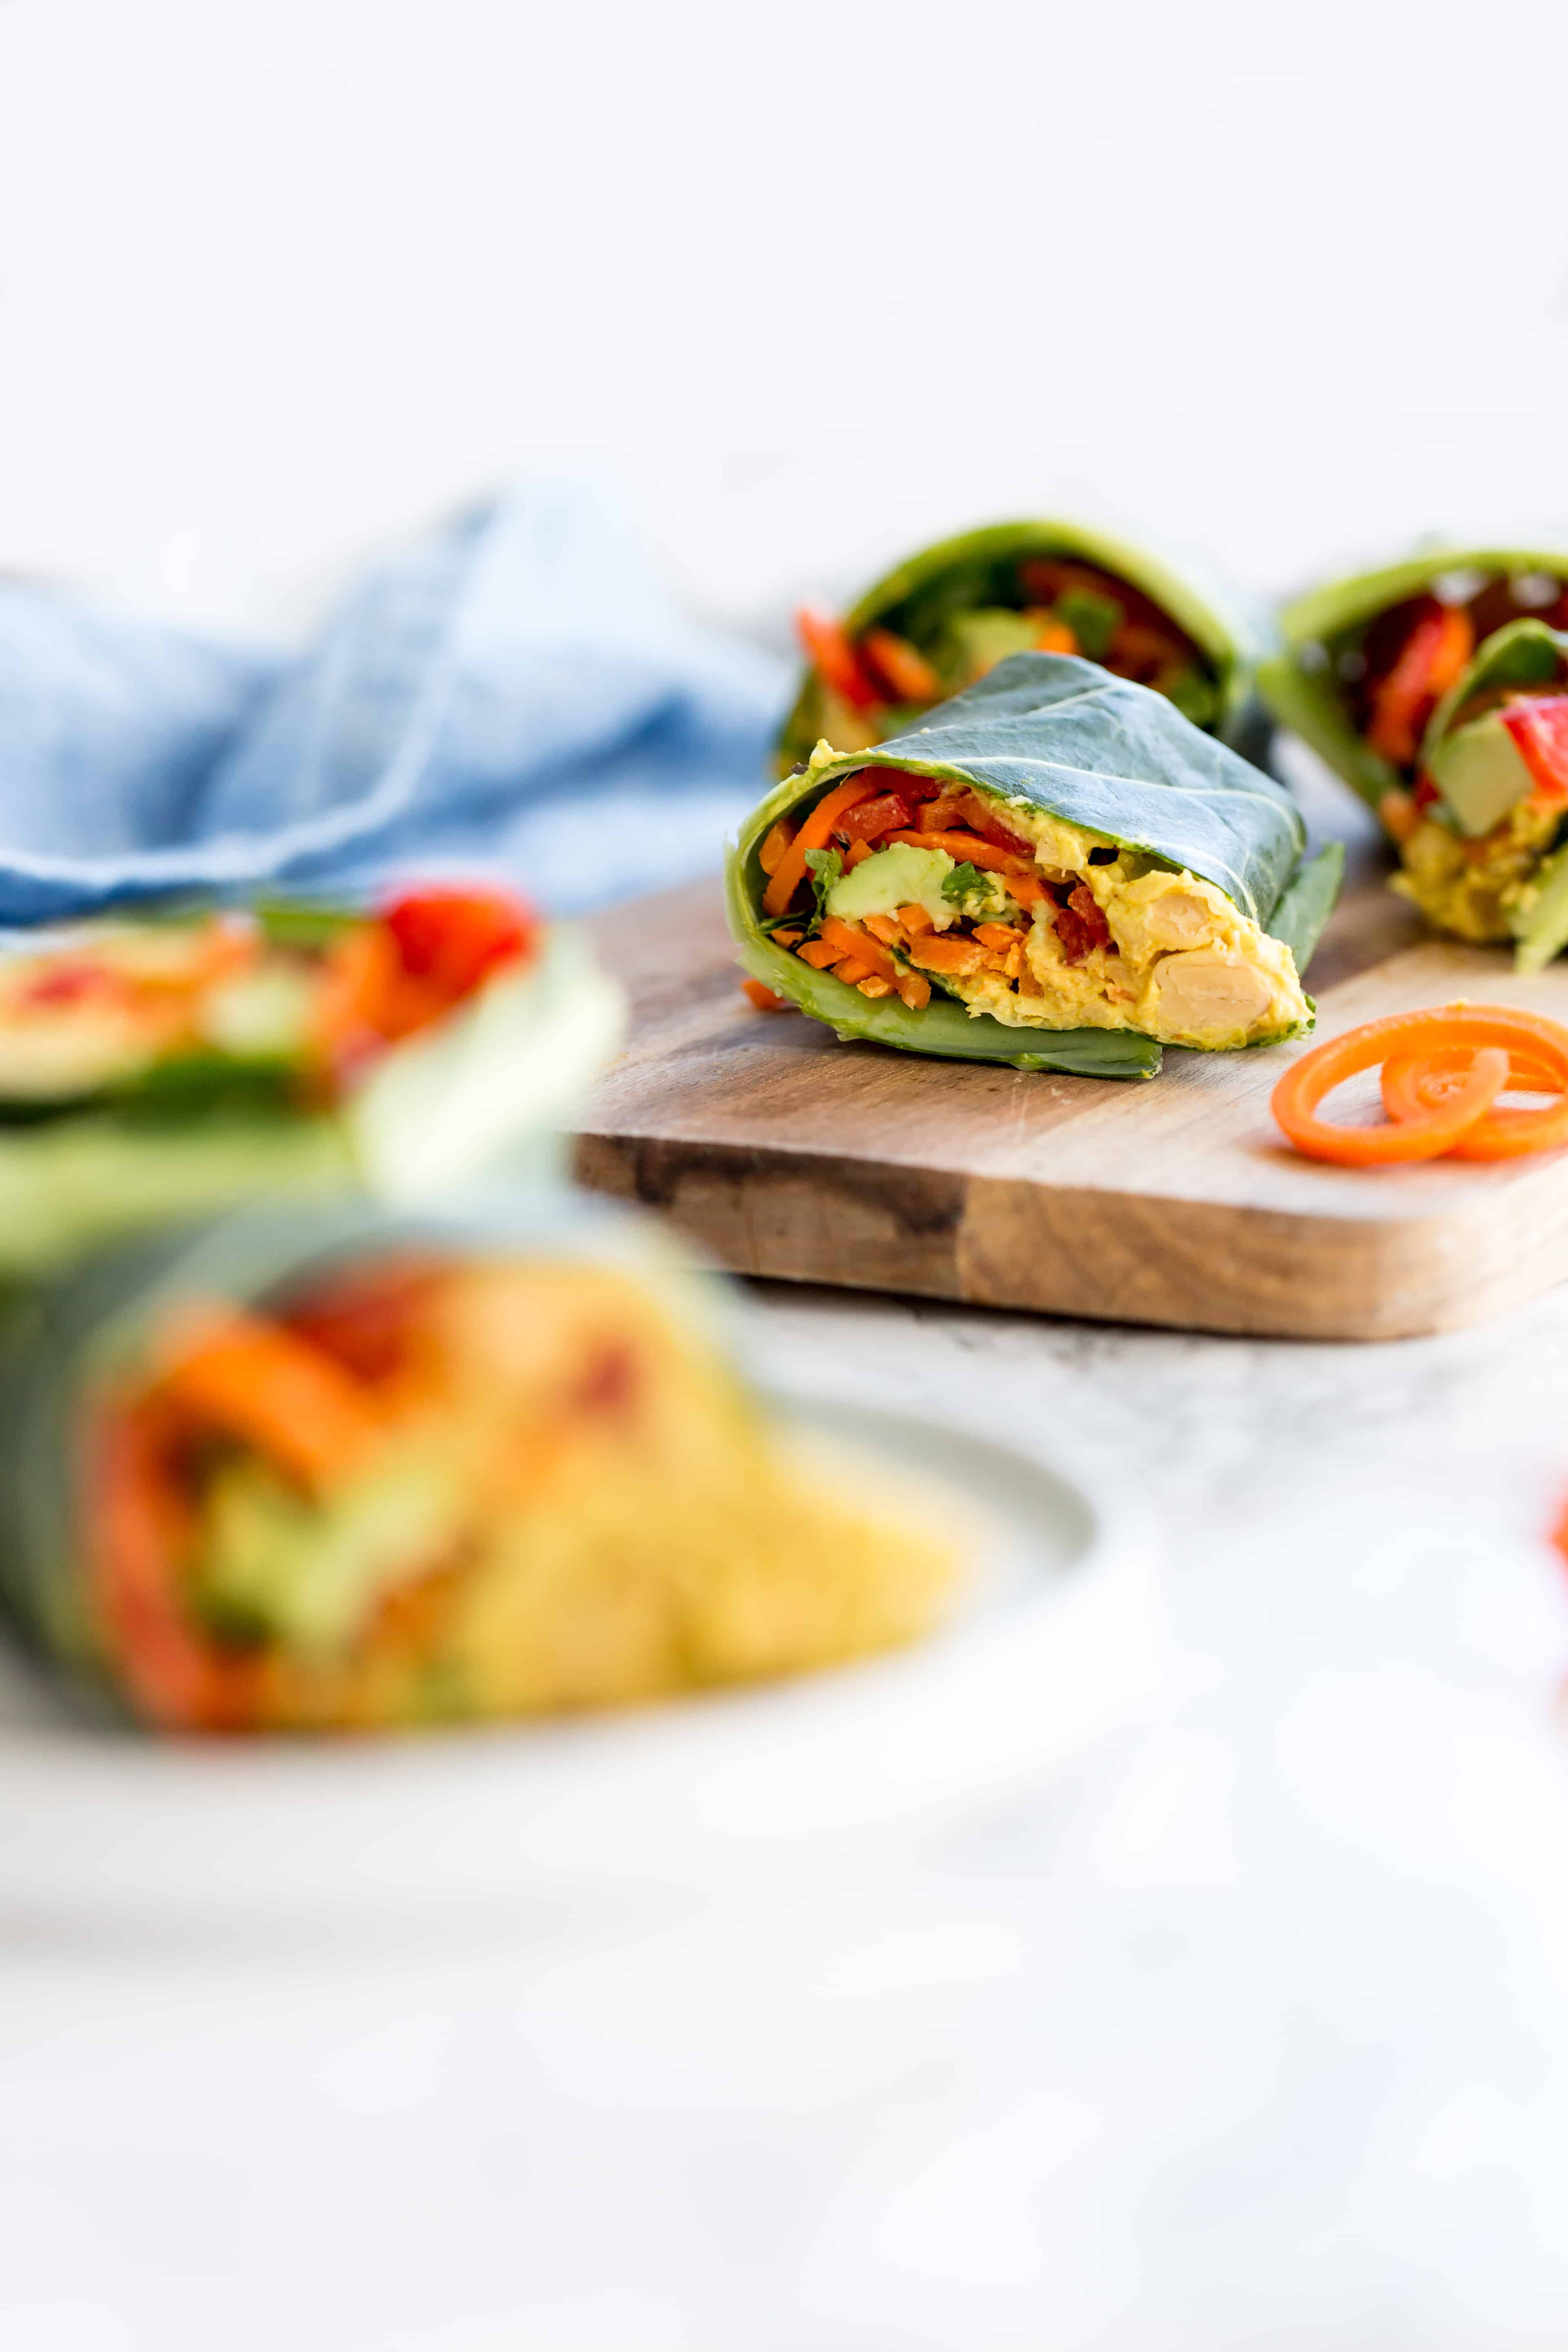 Curried Chickpea and Vegetable Wrap